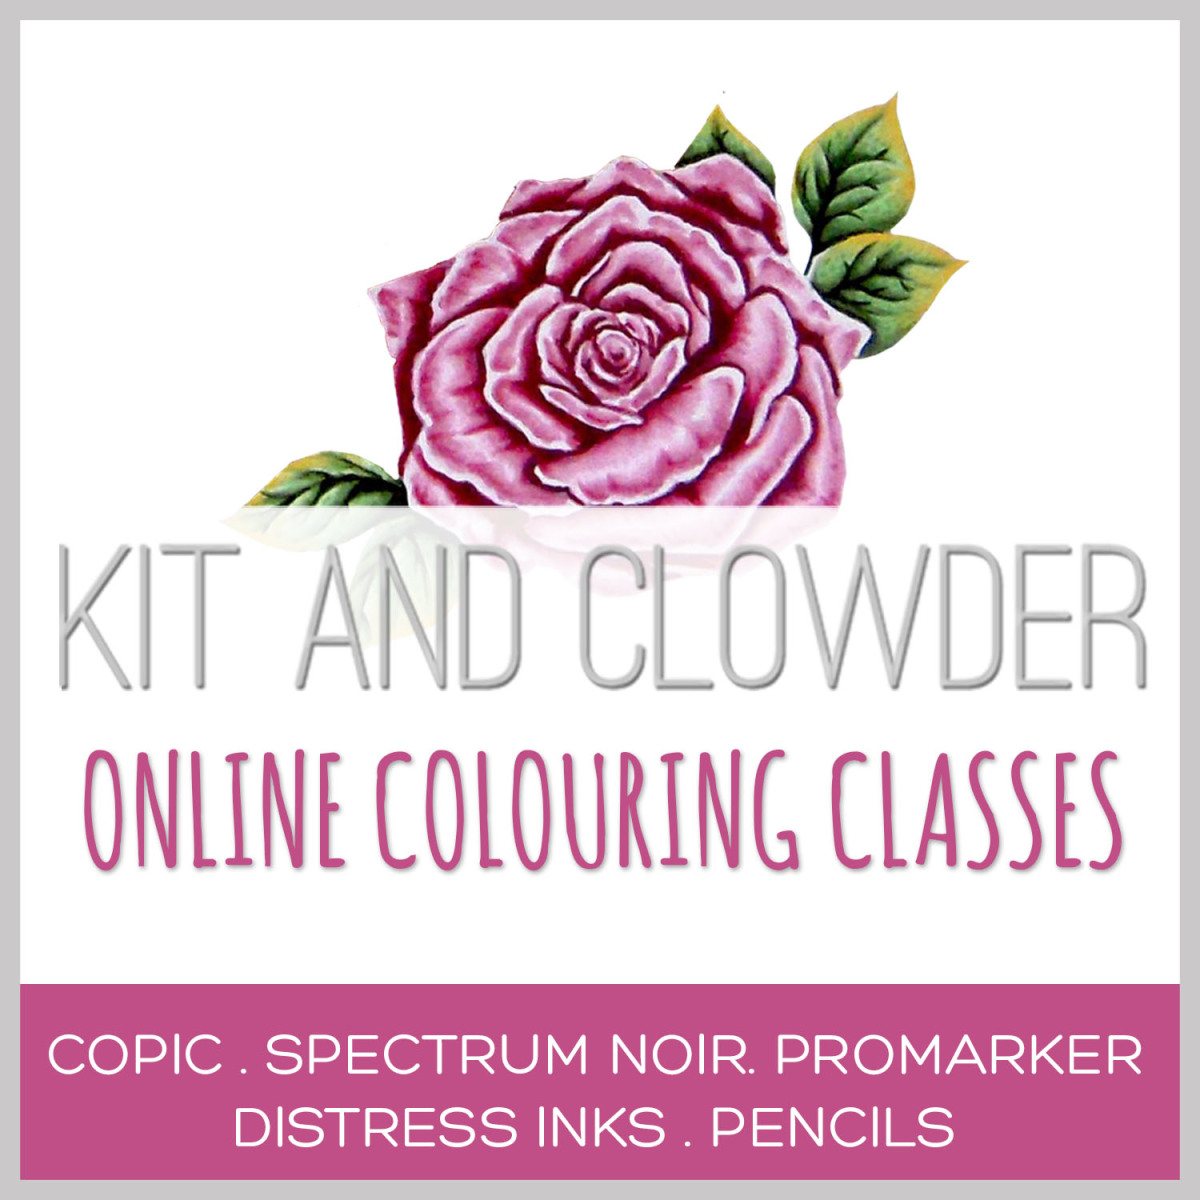 Kit and Clowder On-line Coloring Classes